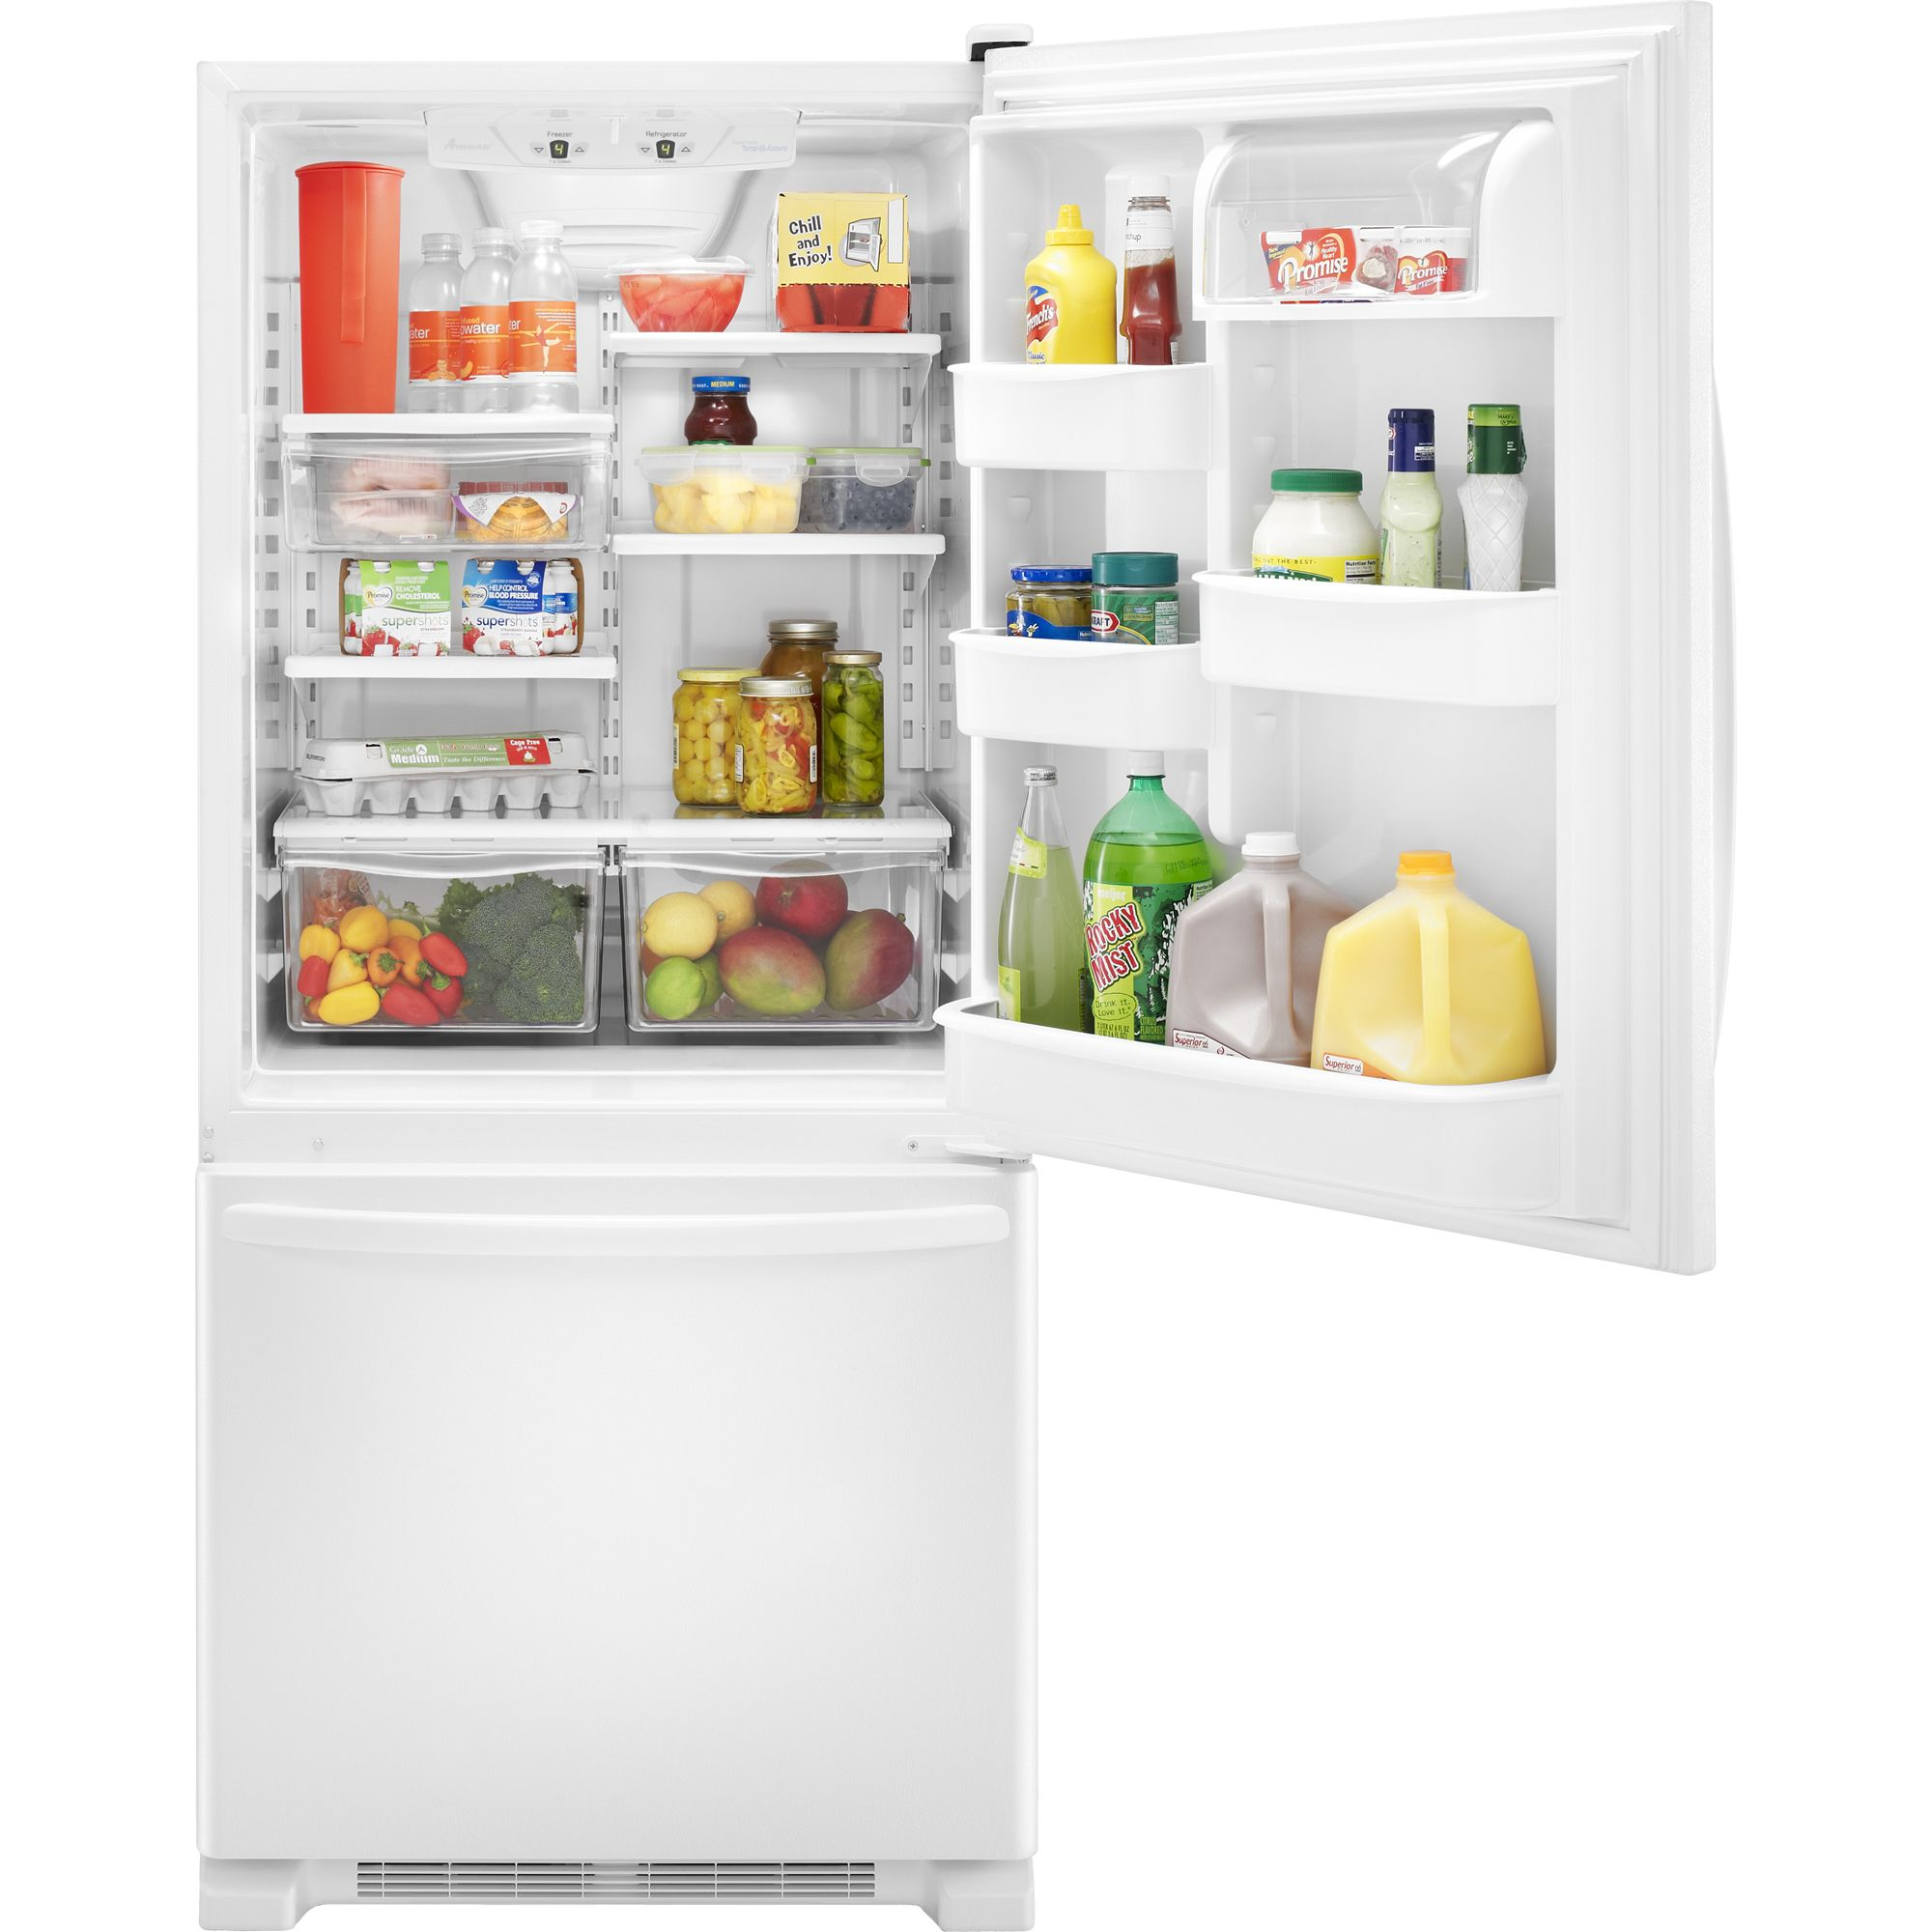 Amana 21.9 cu. ft. Single Door Bottom Freezer Refrigerator - White